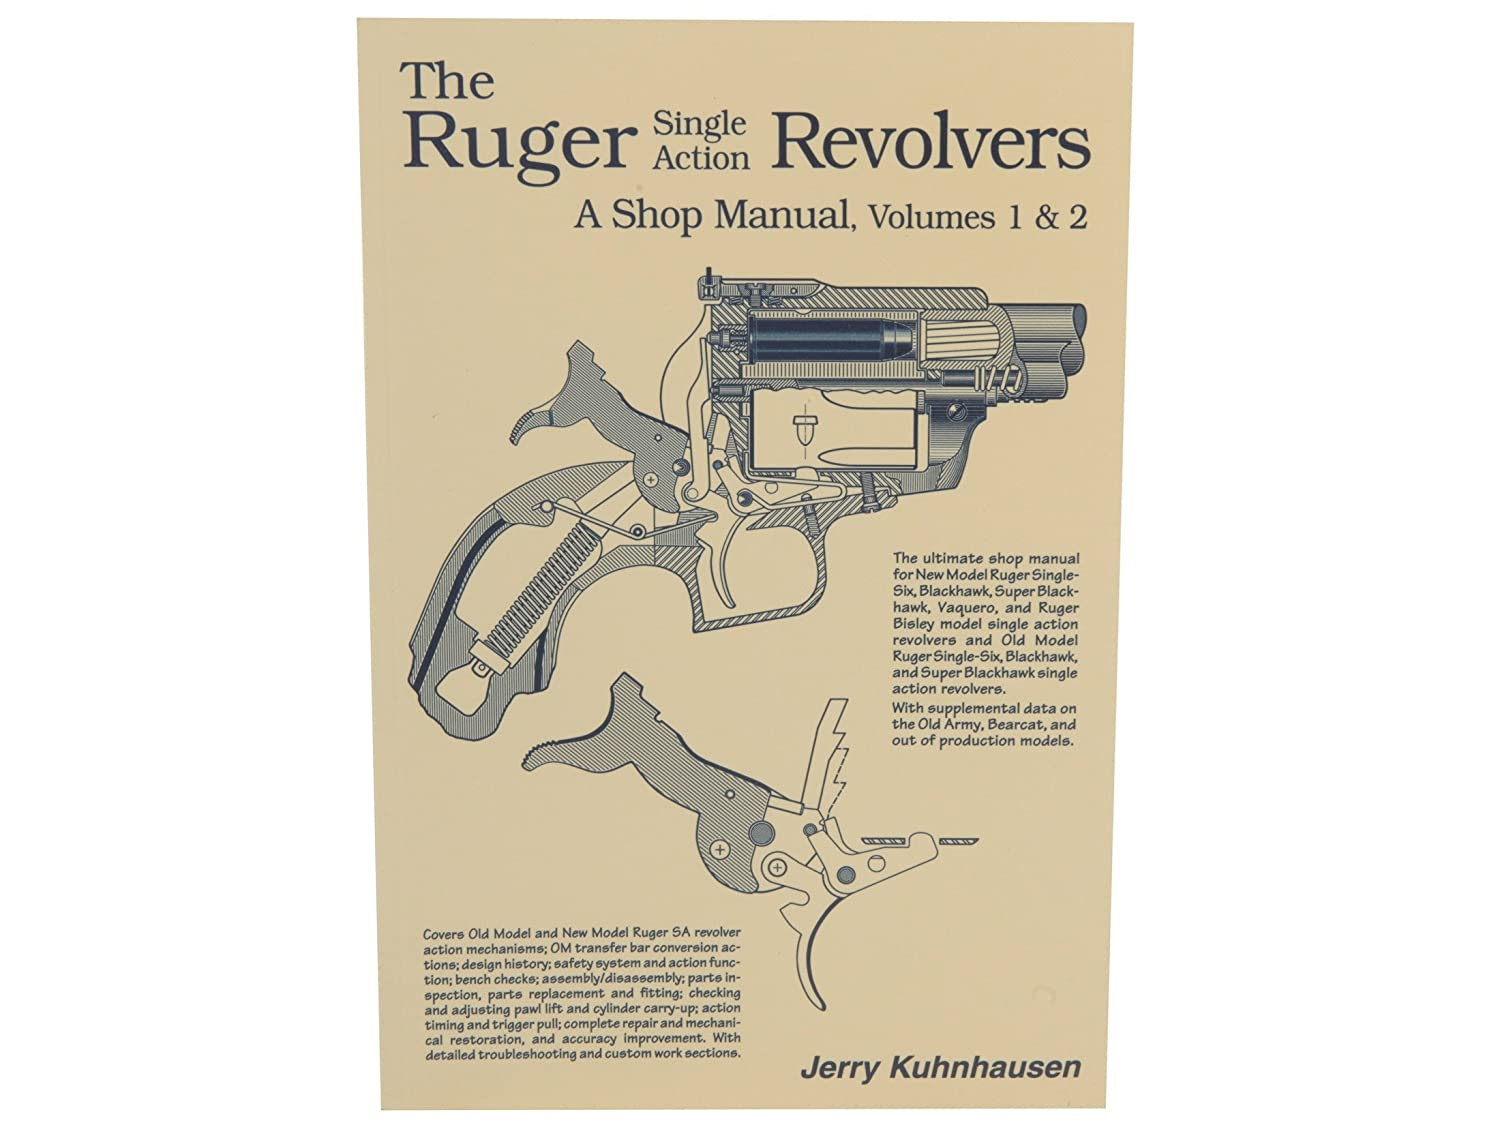 The Ruger Single Action Revolvers: A Shop Manual Volumes 1